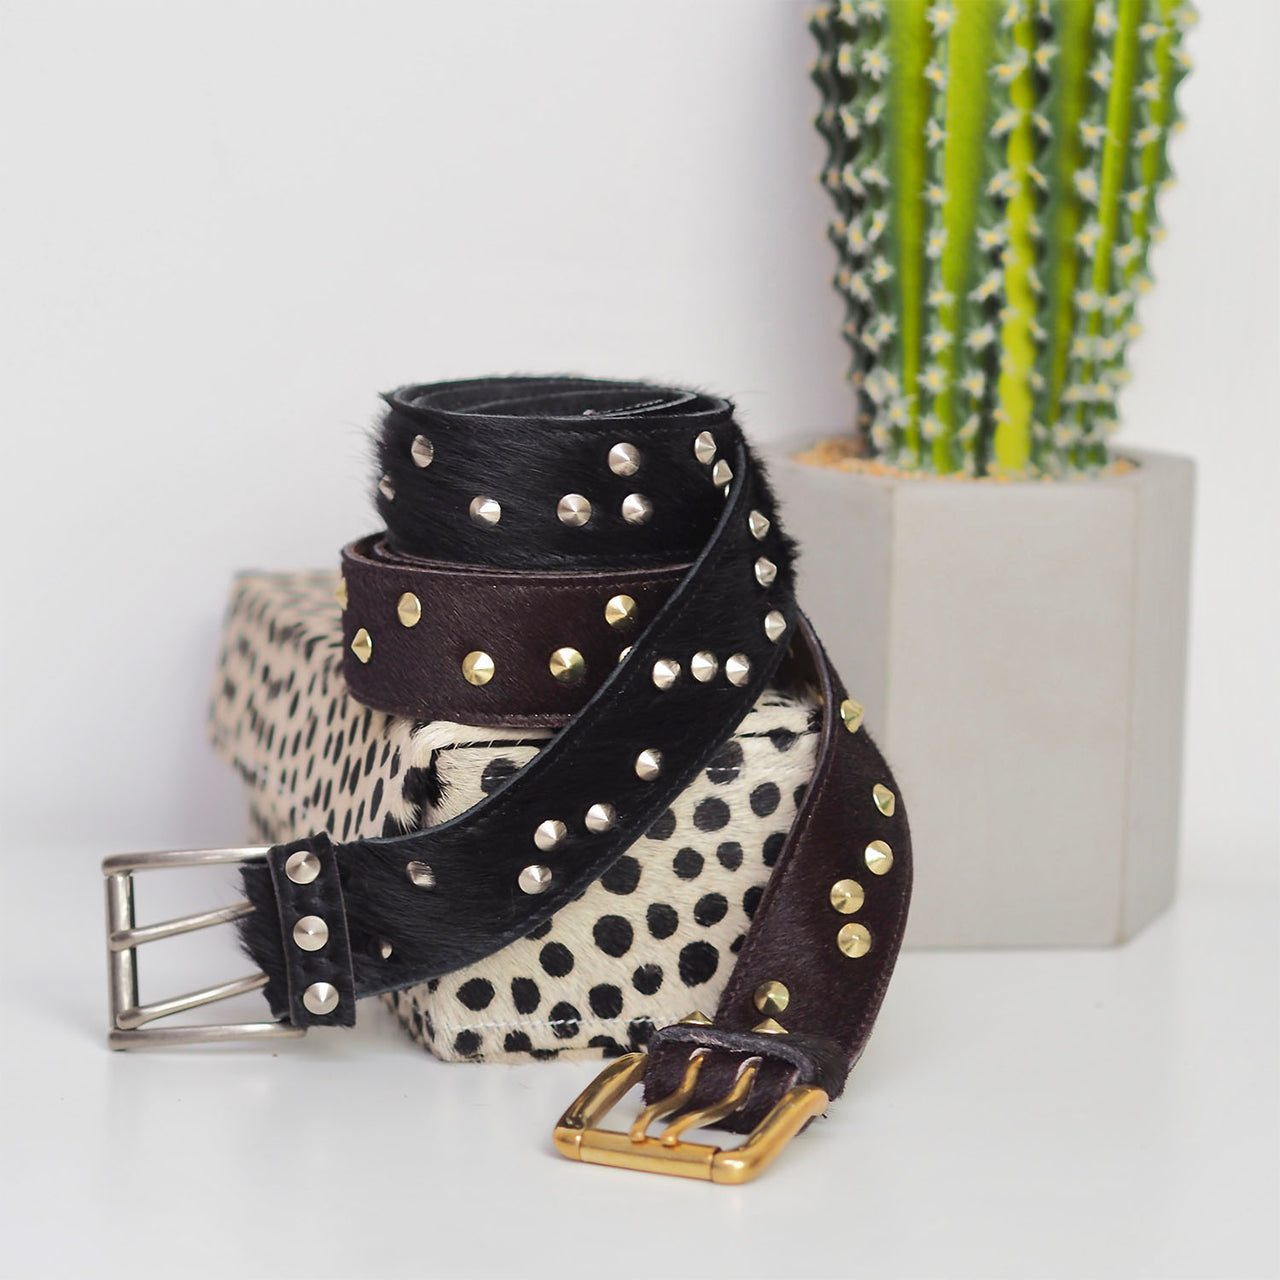 Limited Edition Studded Belt - Black with Silver | Gift Pop Boutique